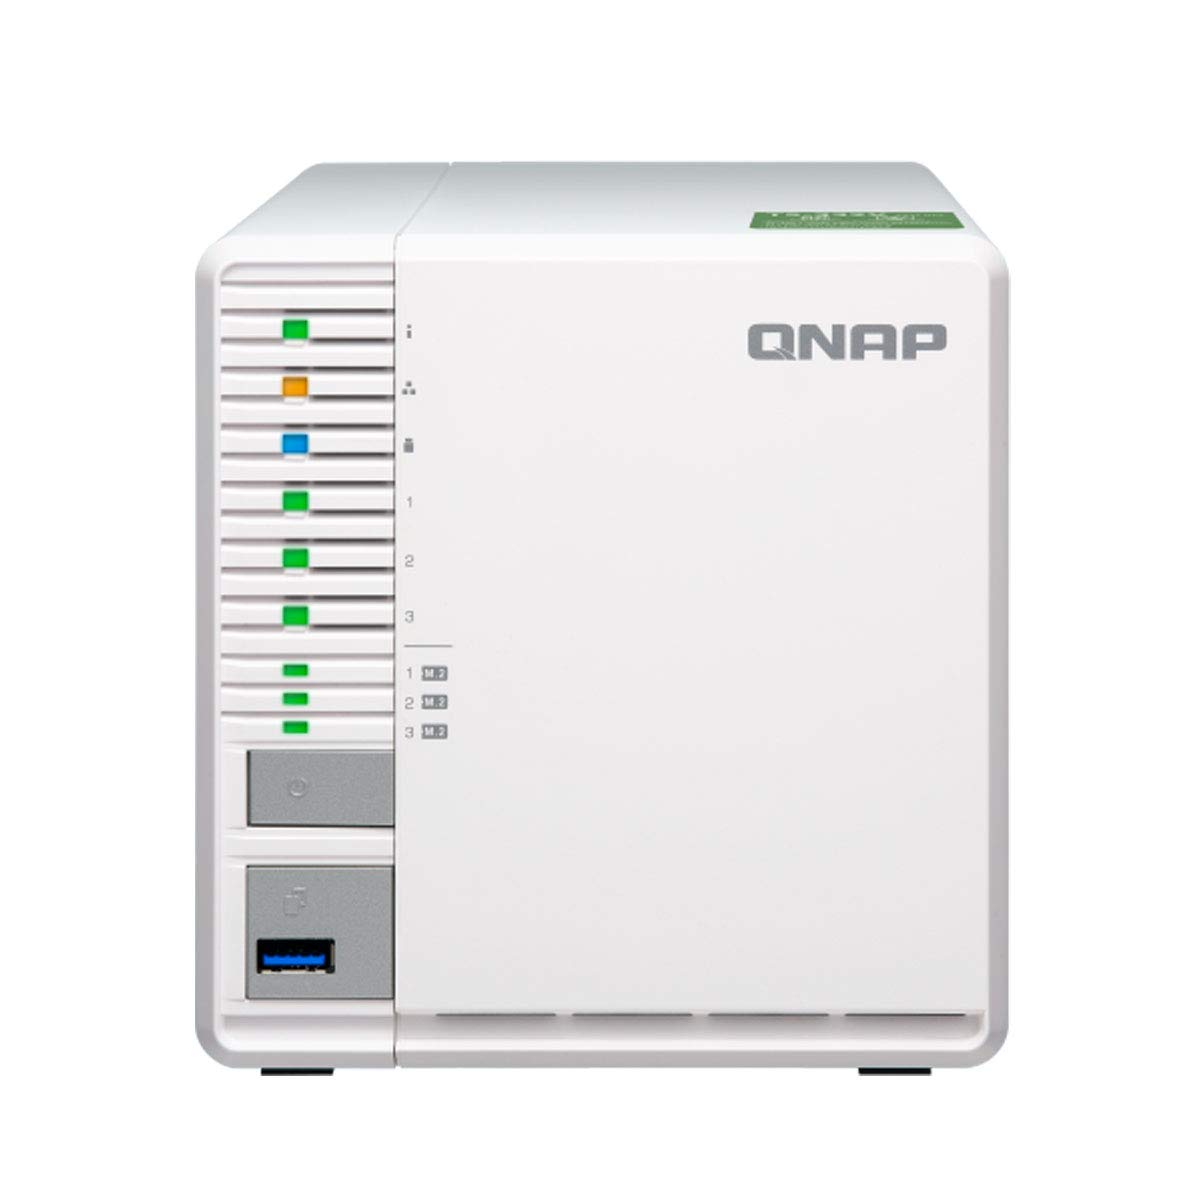 QNAP TS-332X 3-Bay 64-bit NAS with Built-in 10G Network. Quad Core 1.7GHz, 2GB RAM, 1 X 10GbE (SFP+), 2 X 1GbE, 3 X 3.5/2.5'' Drive Slots, 3 X M.2 SATA 2280 Slots, RAID 0/1/5 by QNAP